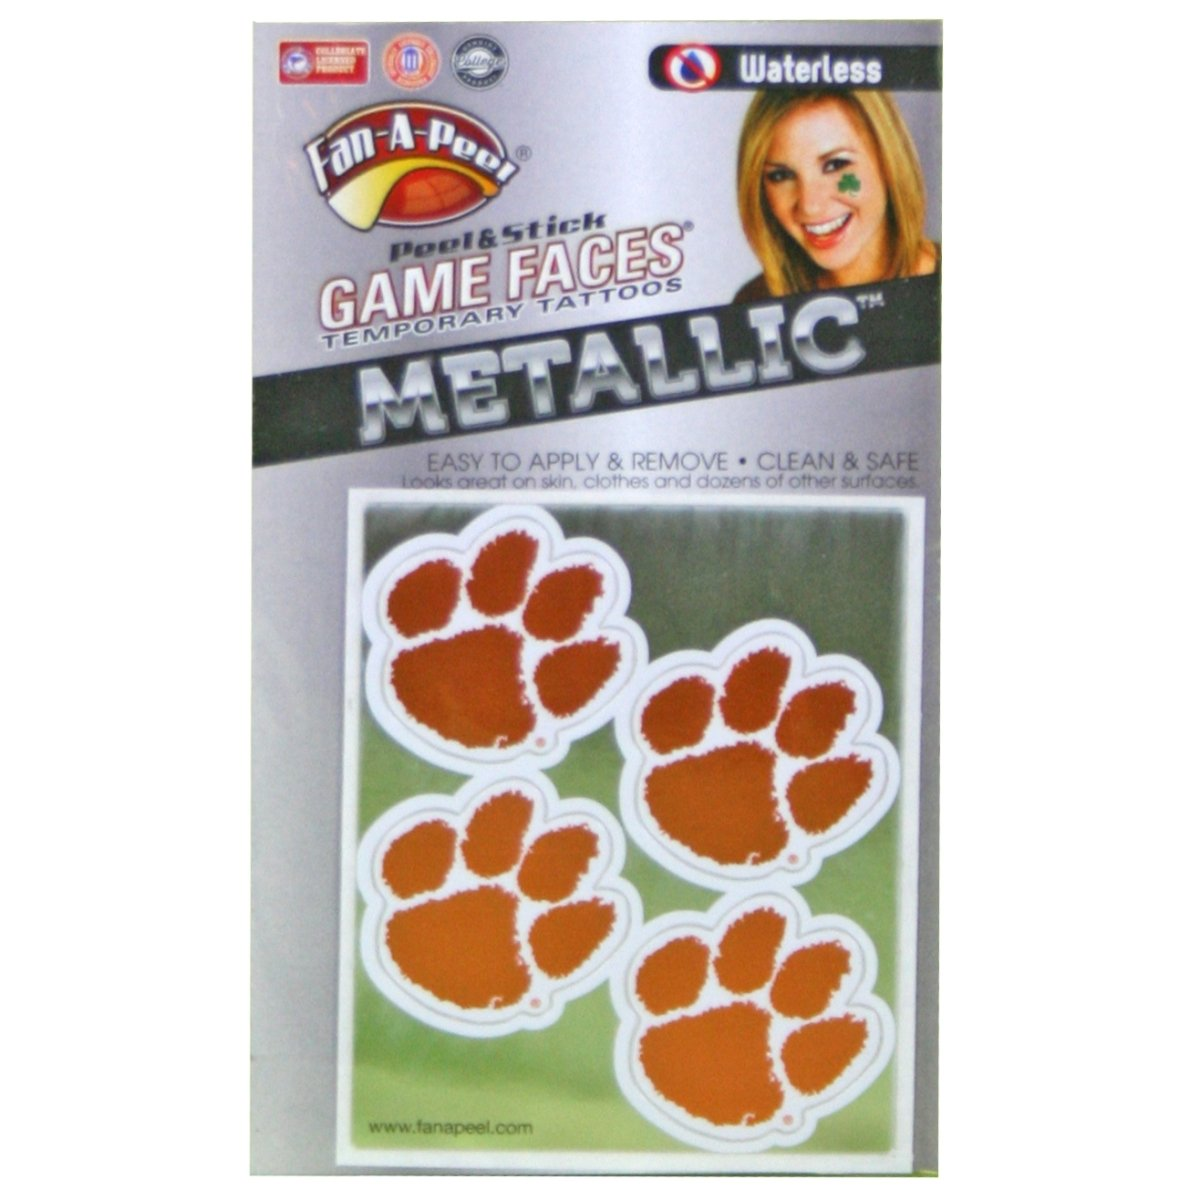 Gamefaces Metallic Peel & Stick Temporary Tattoos 4 Pack Orange and White Paw - Mr. Knickerbocker